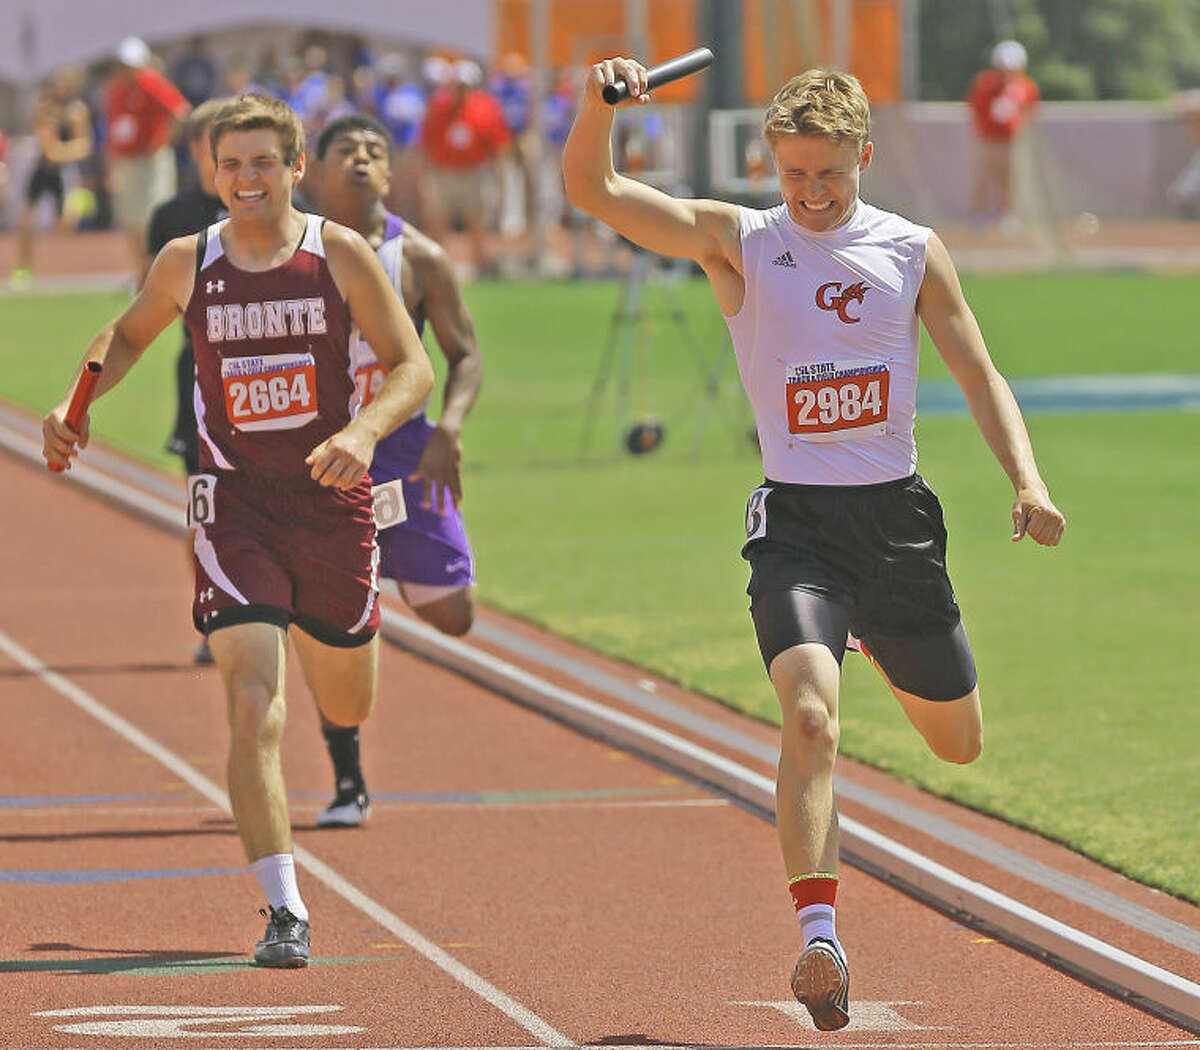 Garden City High School anchor Austin Odom triumphantly crosses the finish line to win the 800 relay in a time of 3:28.61.